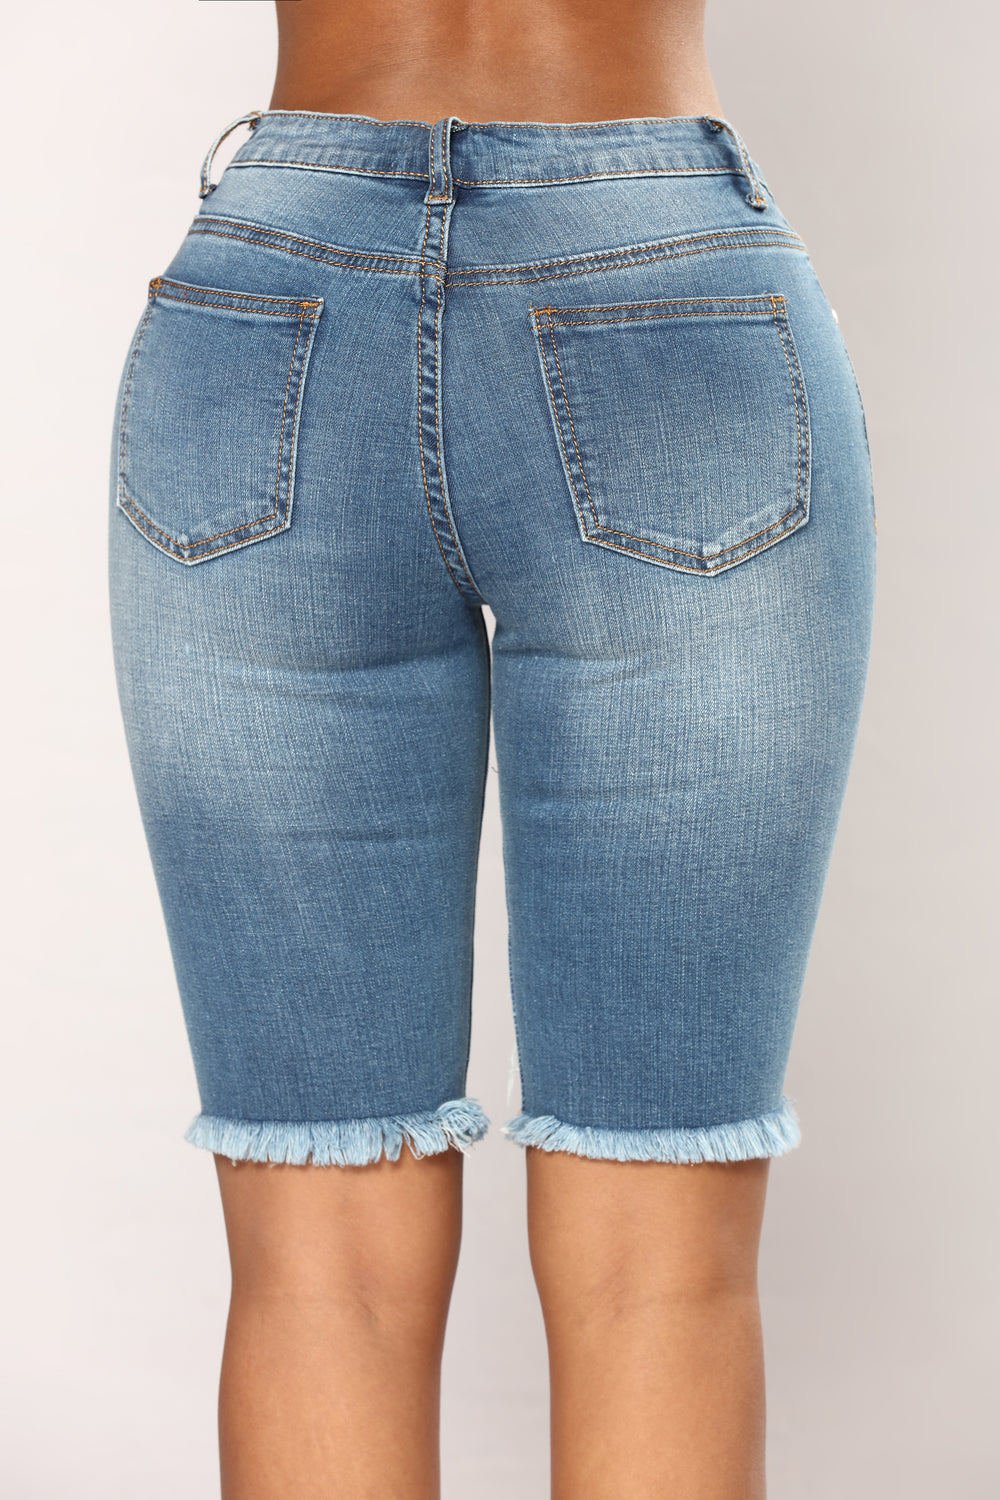 Take A Break Bermuda Shorts - Medium Blue Wash